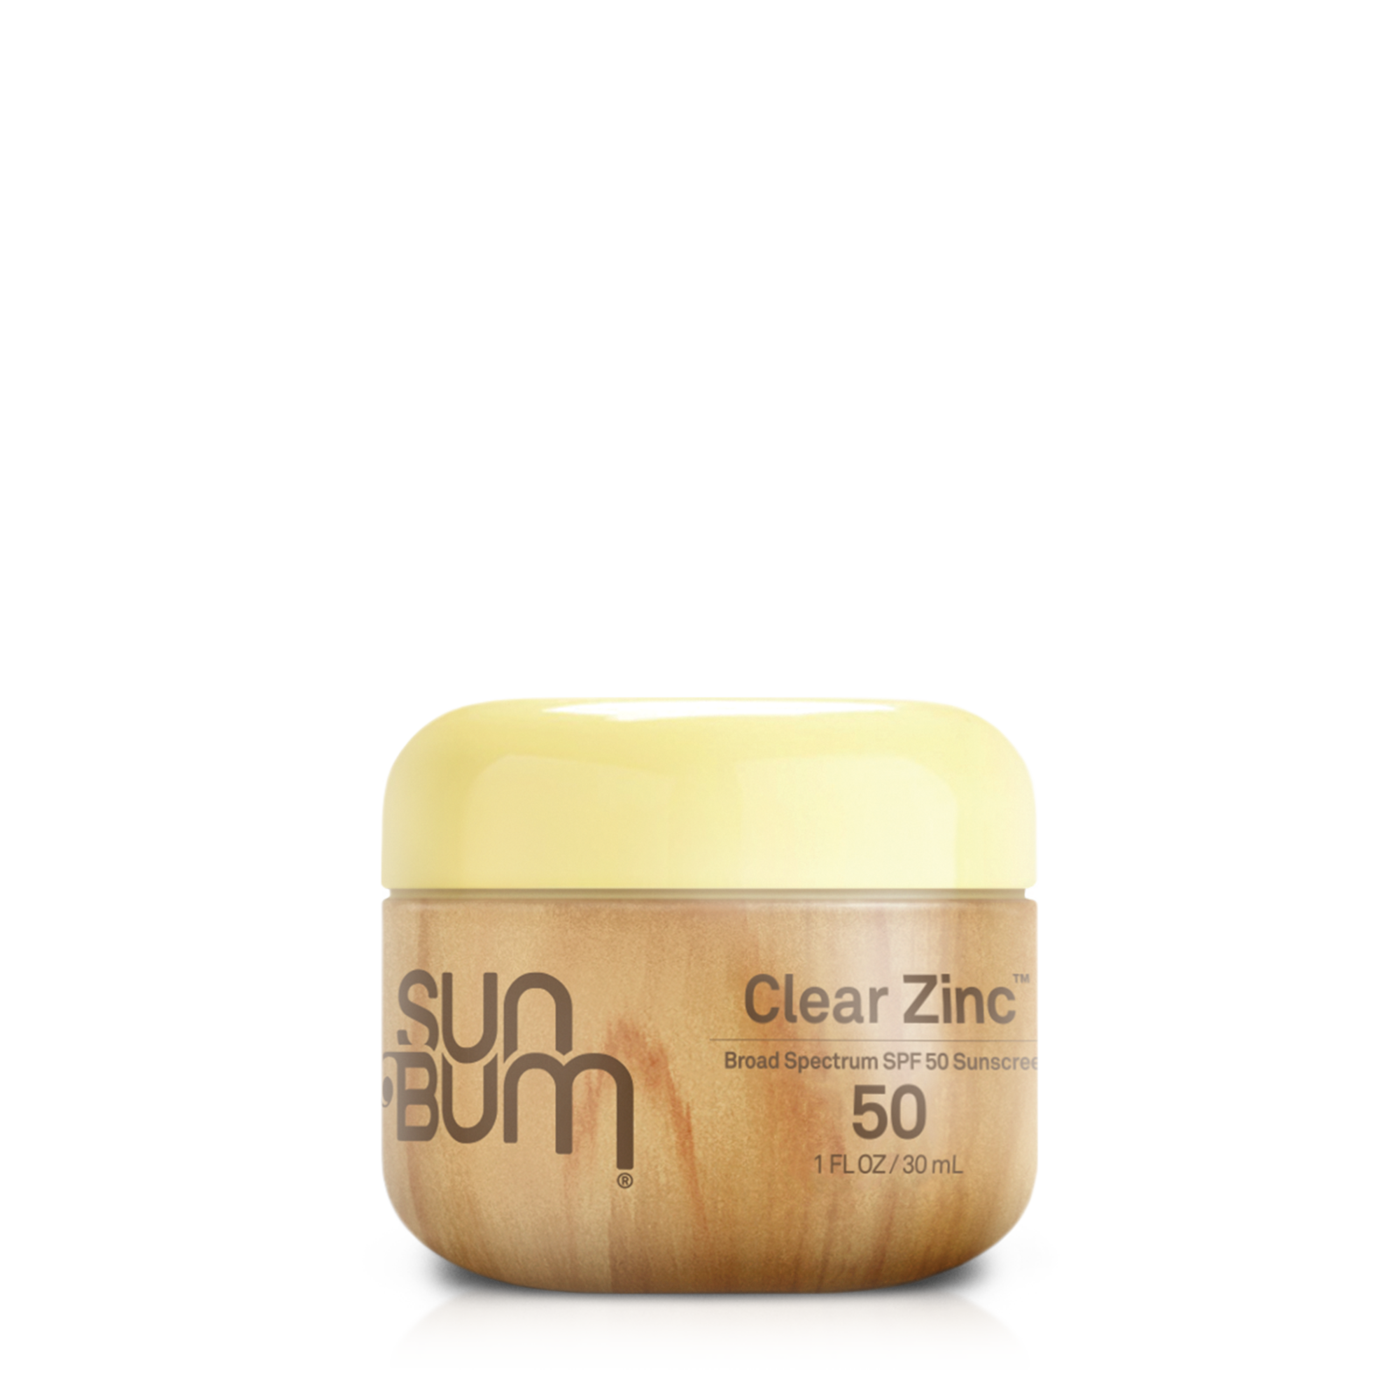 Sun Bum Clear Zink Sunscreen Lotion SPF 50